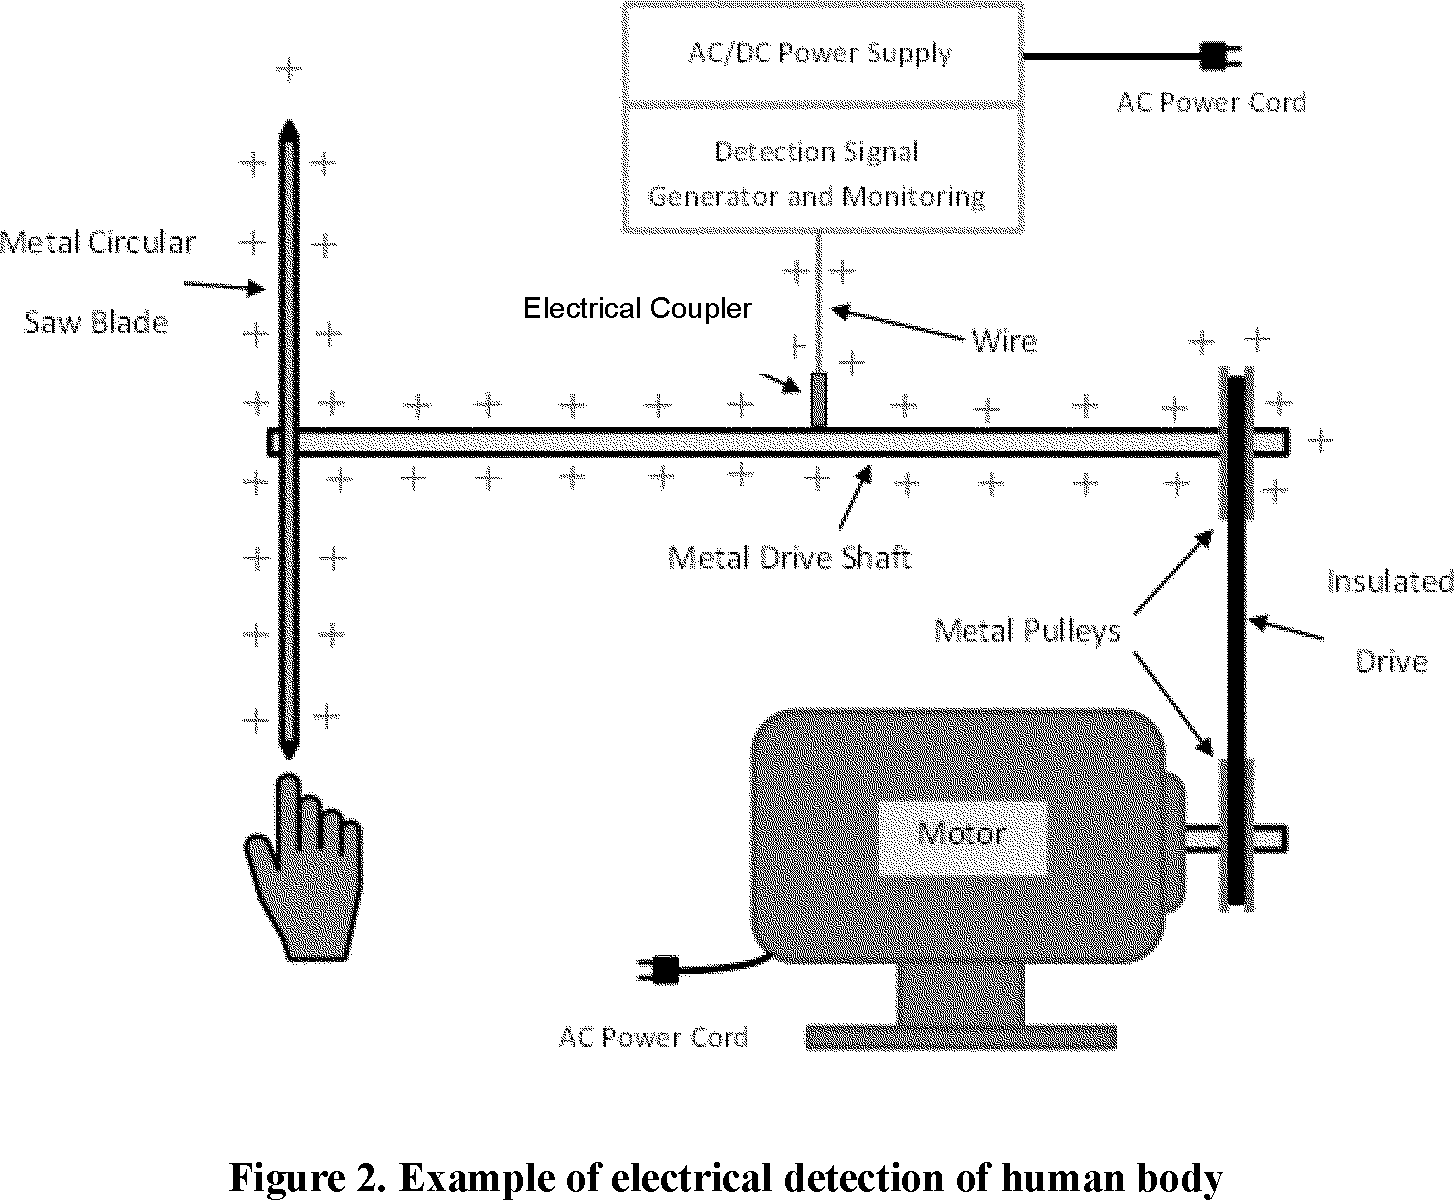 hight resolution of  contact with the saw blade and the monitoring circuit senses the change in the signal if the change is beyond a certain limit the monitoring circuit